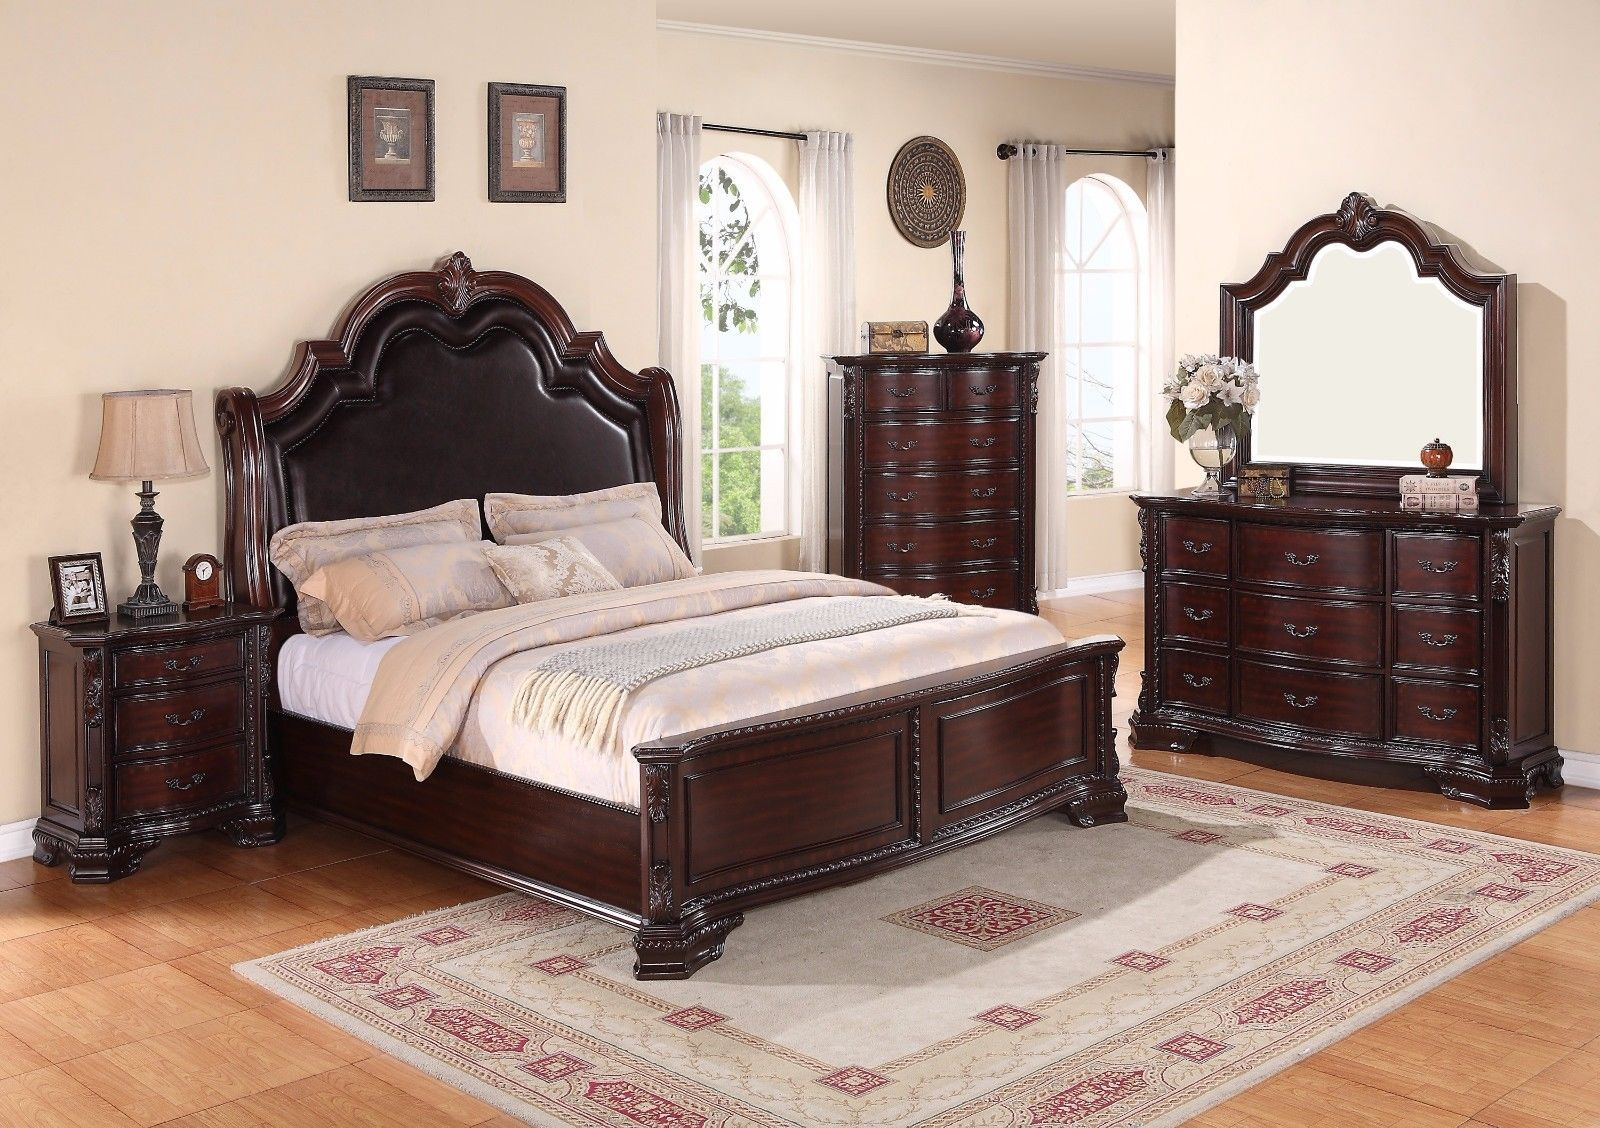 Crown Mark RB1100 Sheffield king Size Bedroom Set 2 Night Stands Traditional